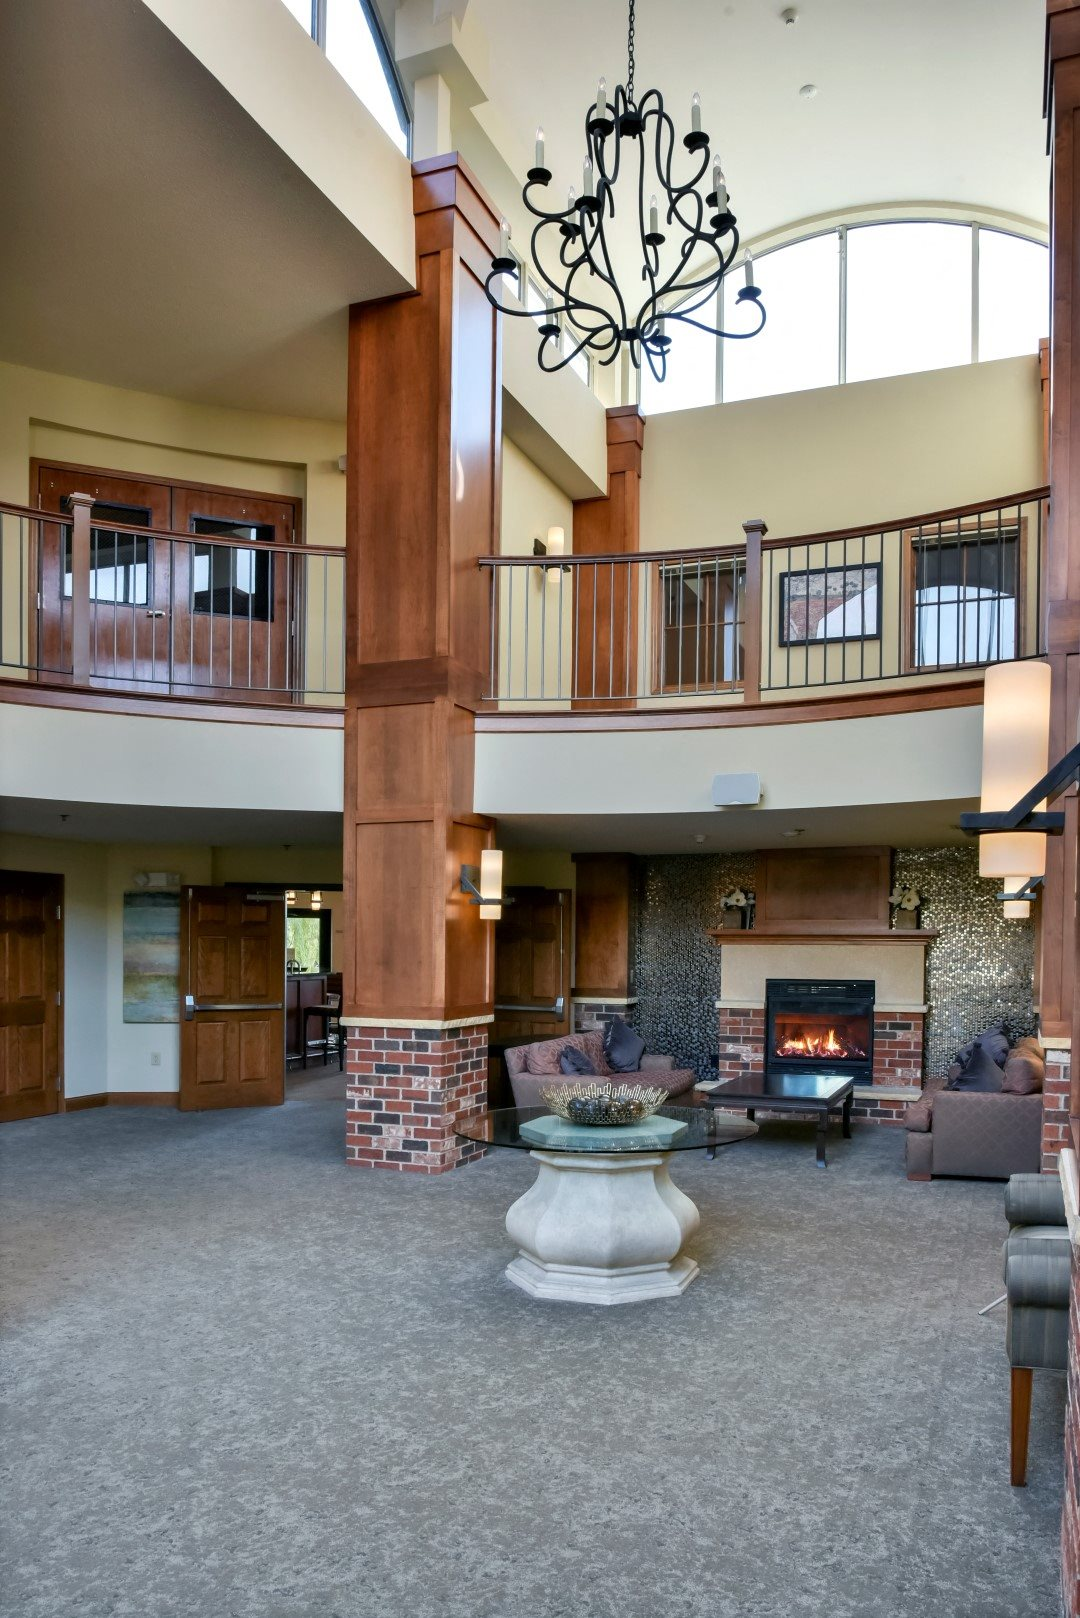 updated lobby with beautiful staircase and fireplace